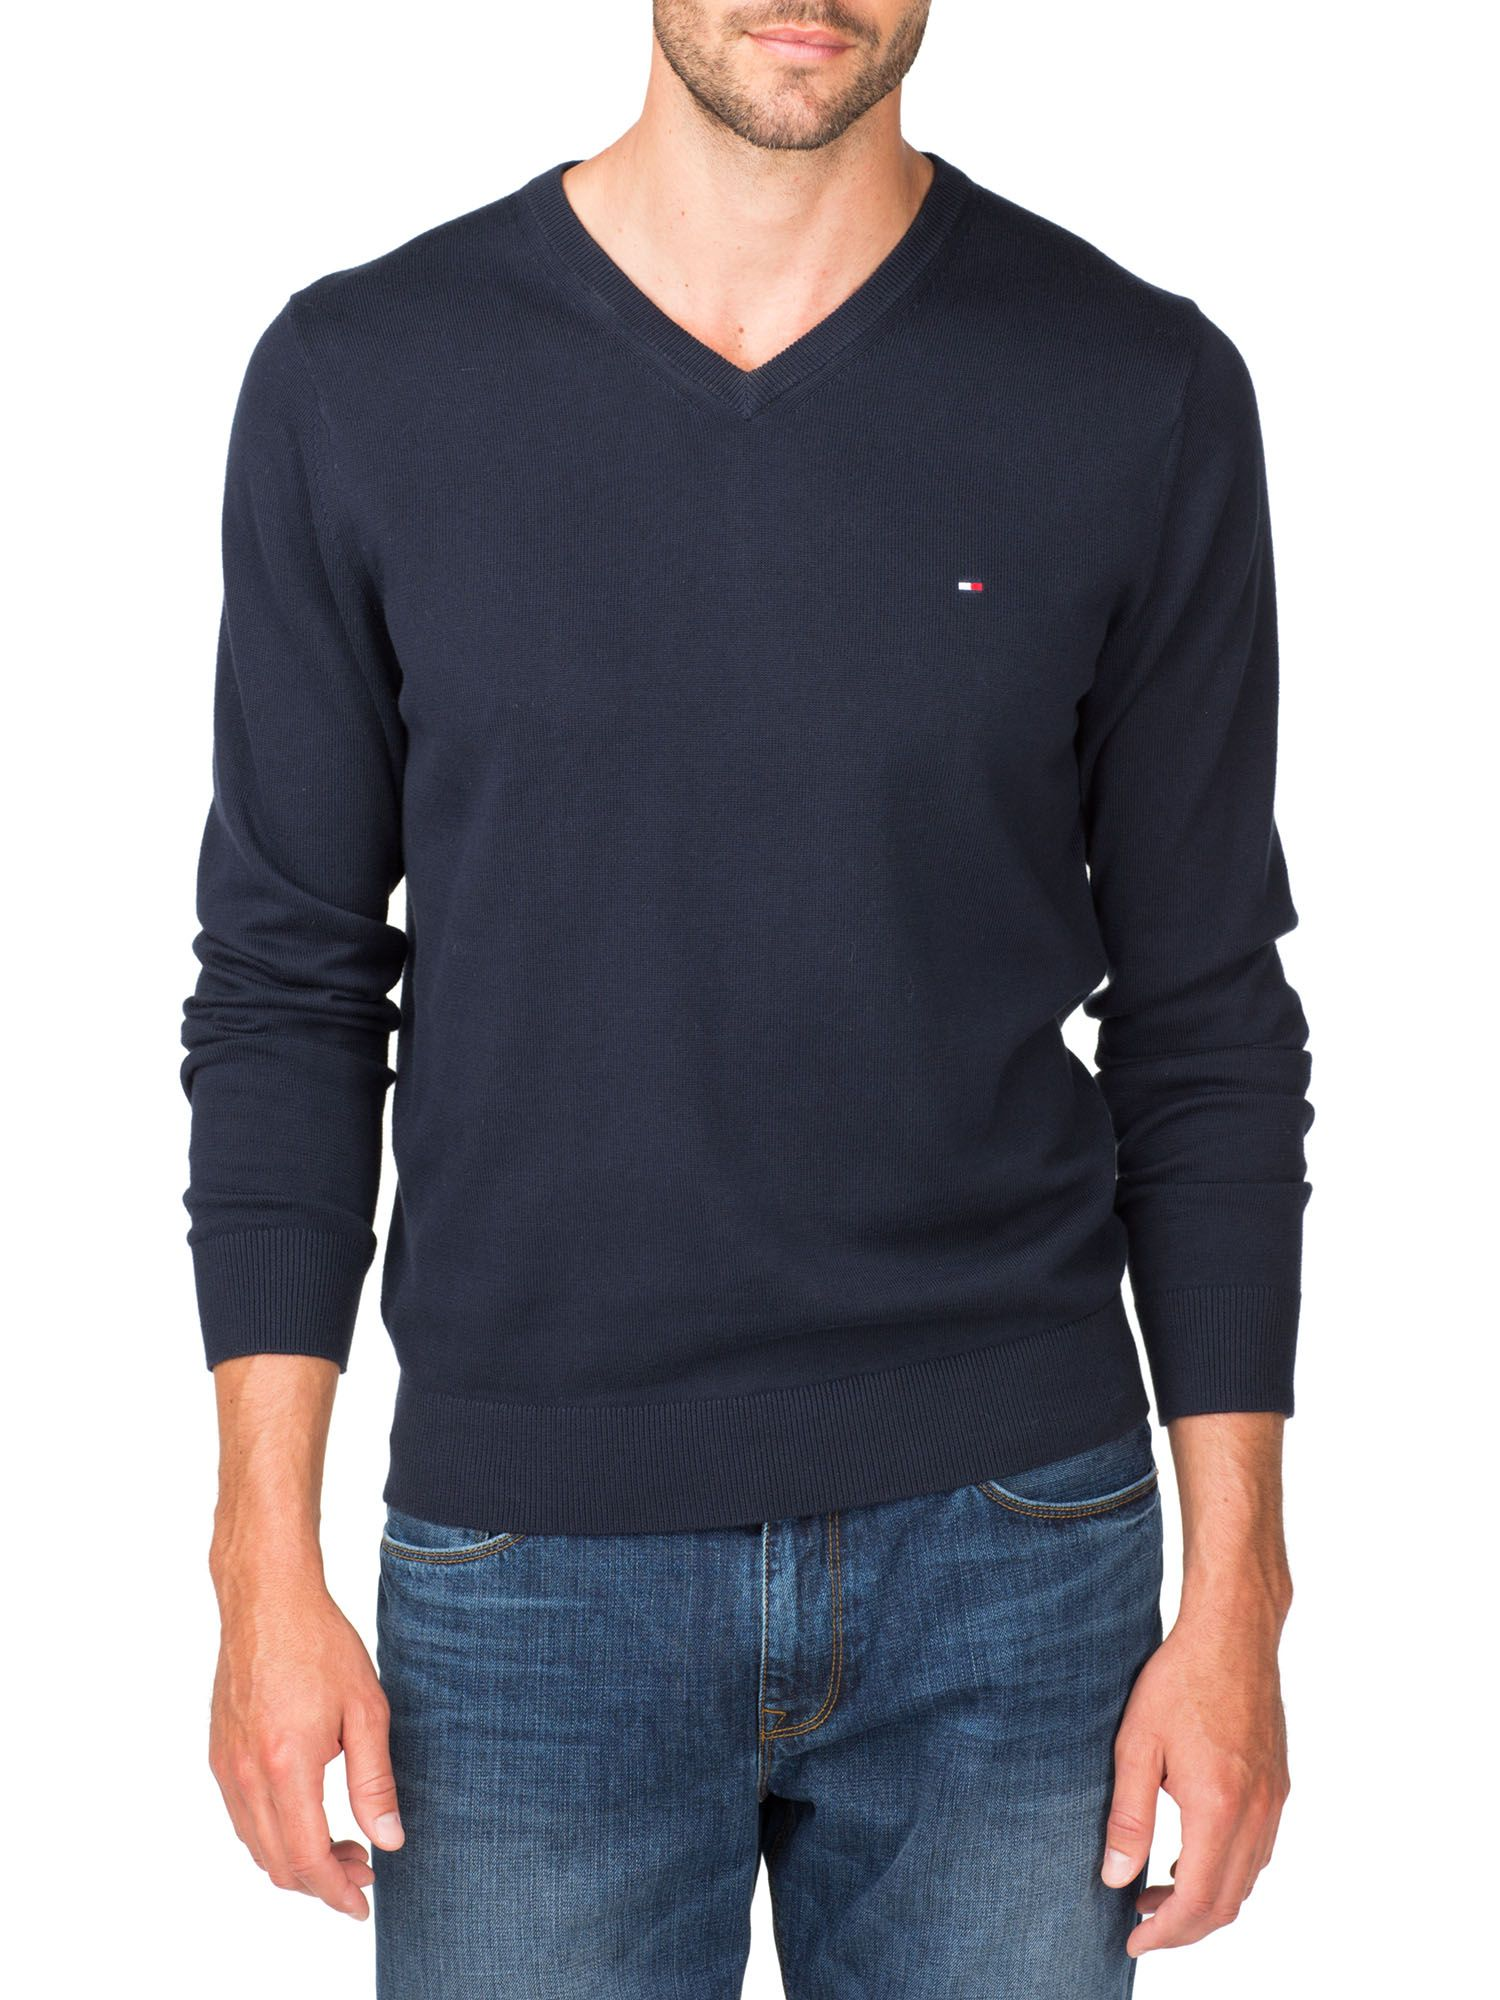 Pacific v-neck jumper